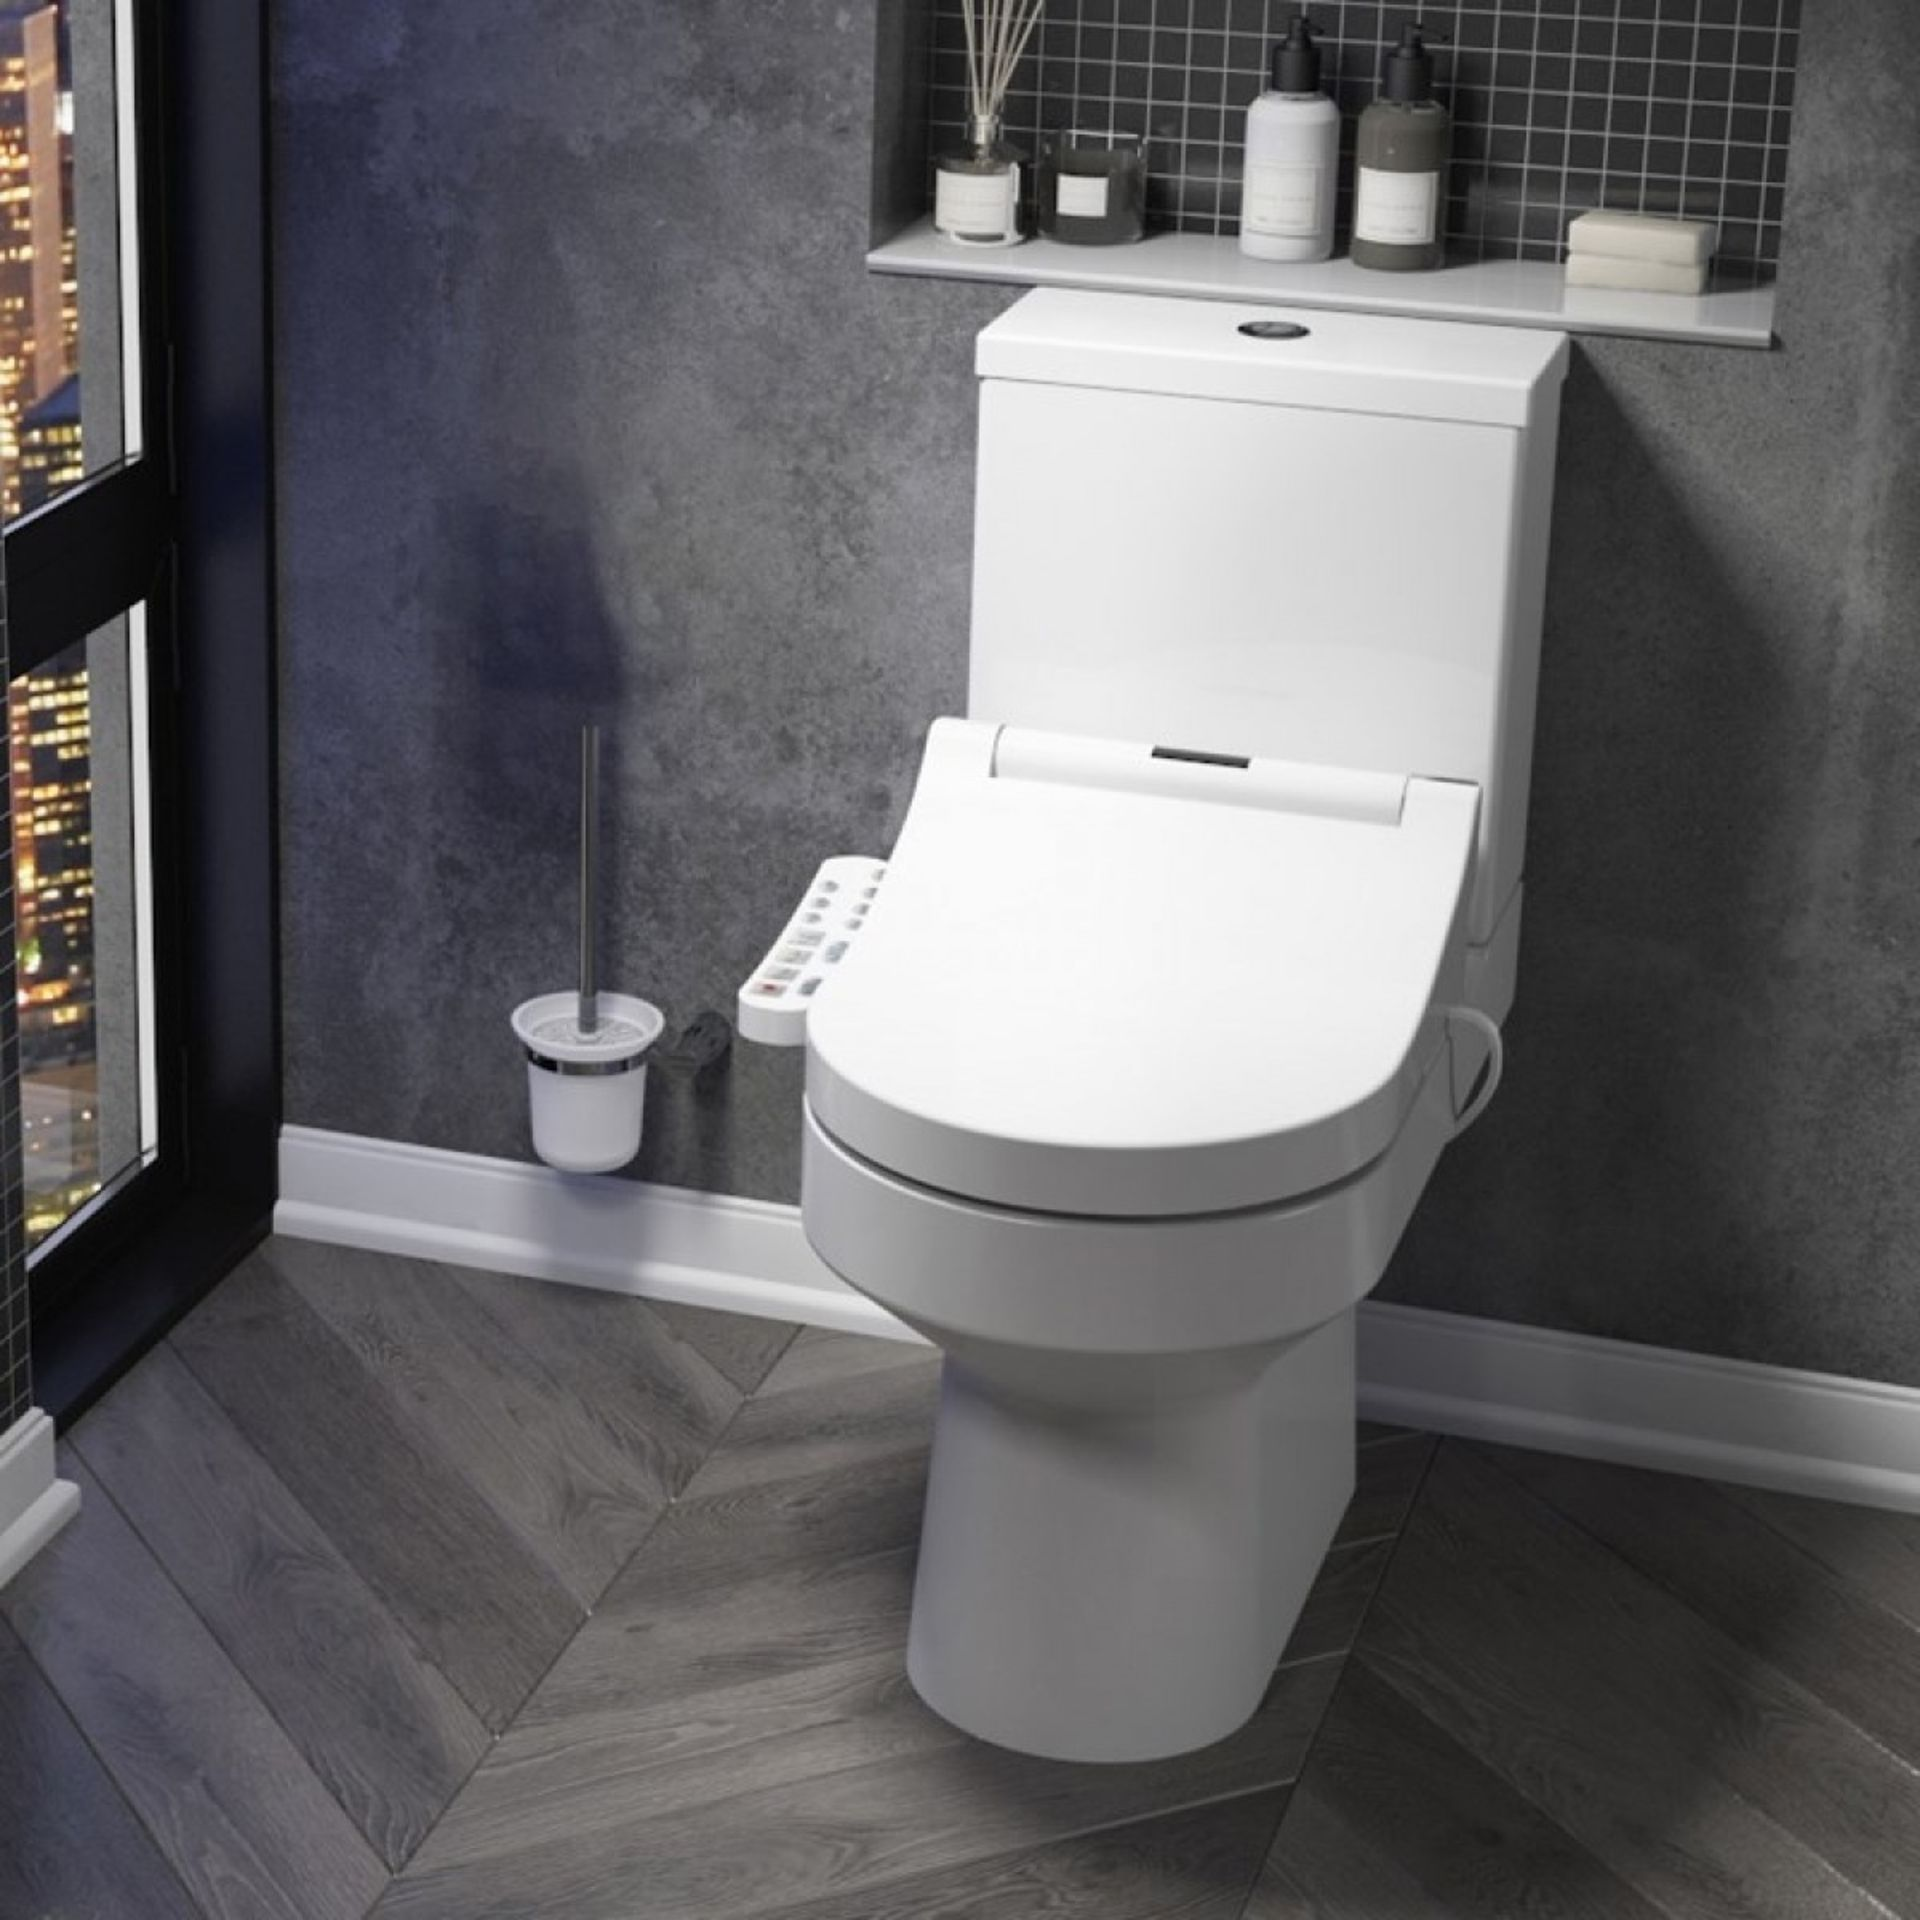 How Much Water Does a Running Toilet Use?